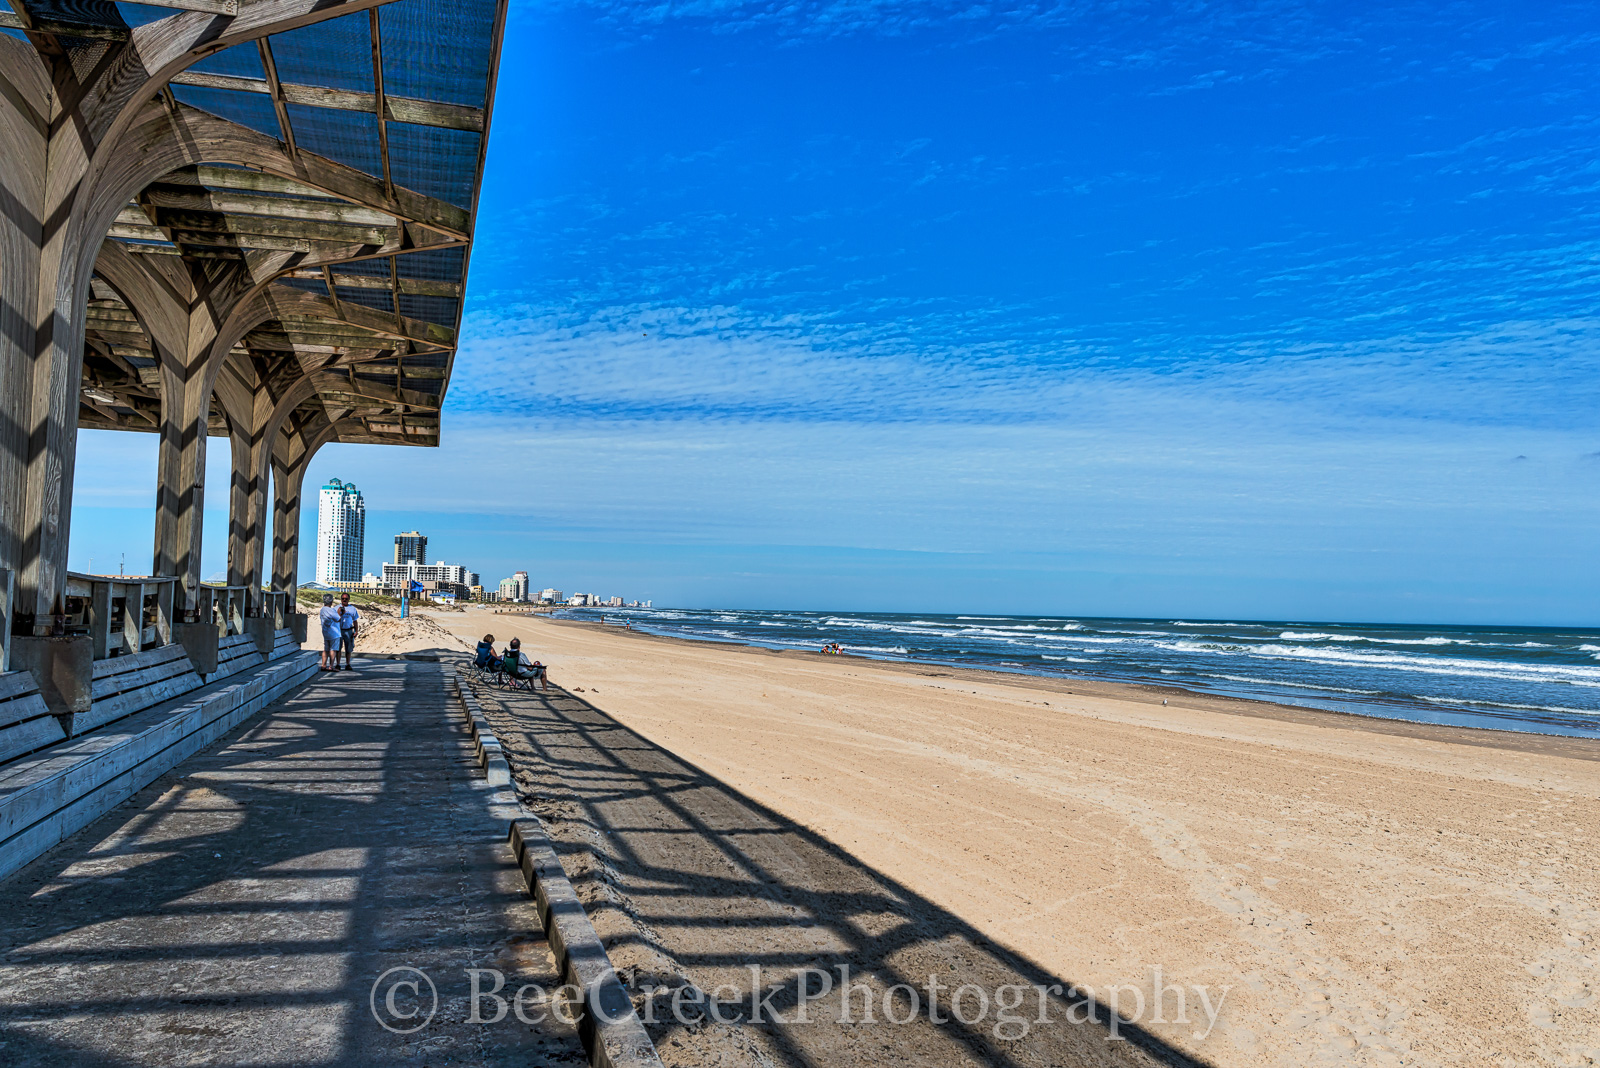 Padre Island, South Padre Island, Texas beach, beach, coastal, dunes, hotels, landscape, landscapes, ocean, people, sand, sand castles, sea shore, summer fun, surf, swimming, texas, walking, water, wi, photo